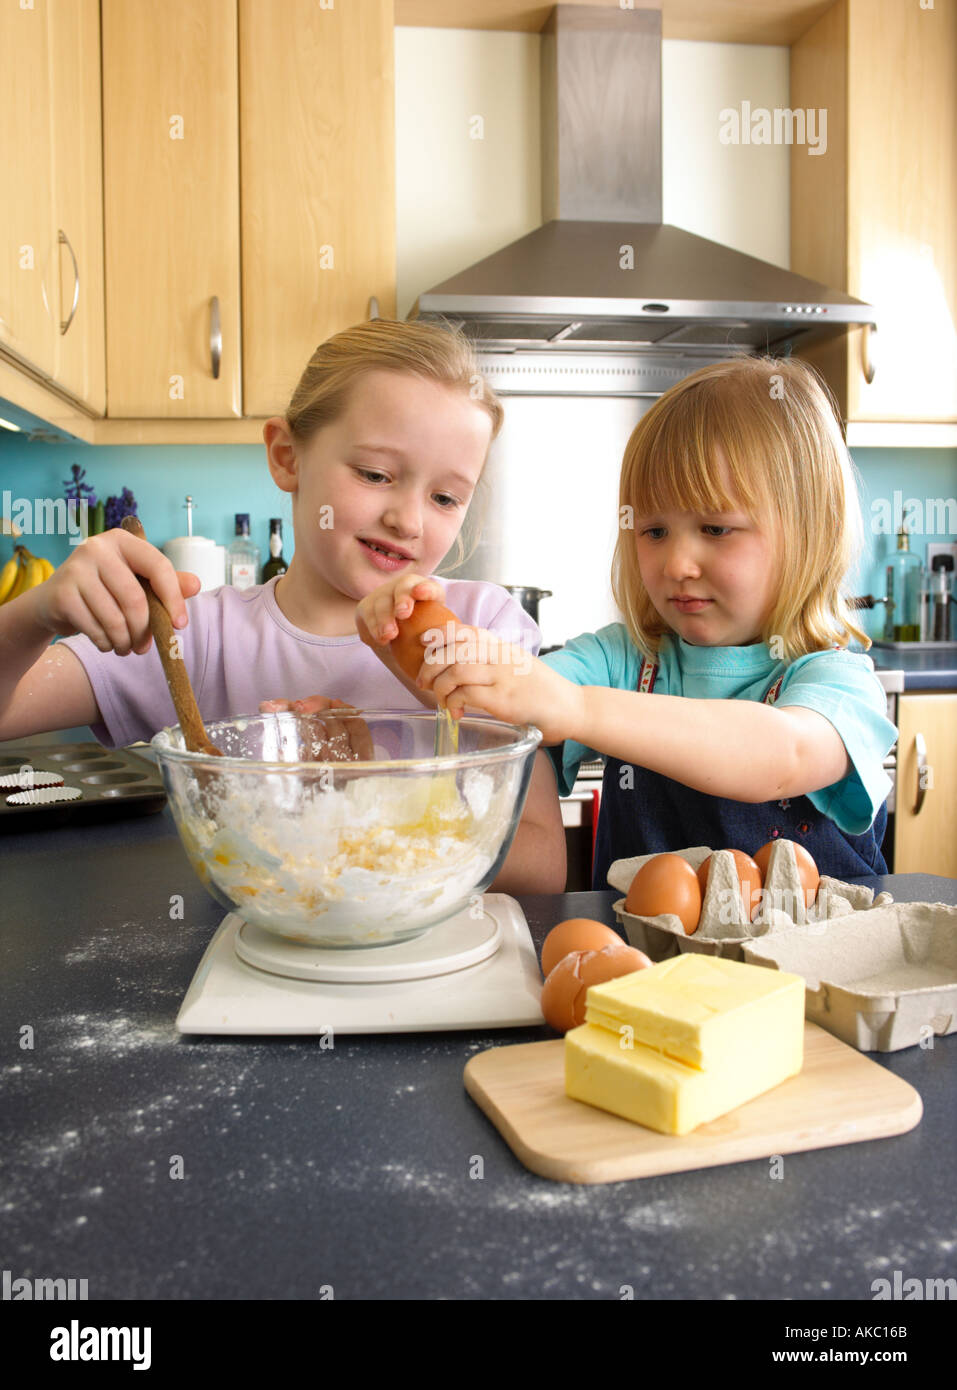 Children cooking cakes in the kitchen at home - Stock Image